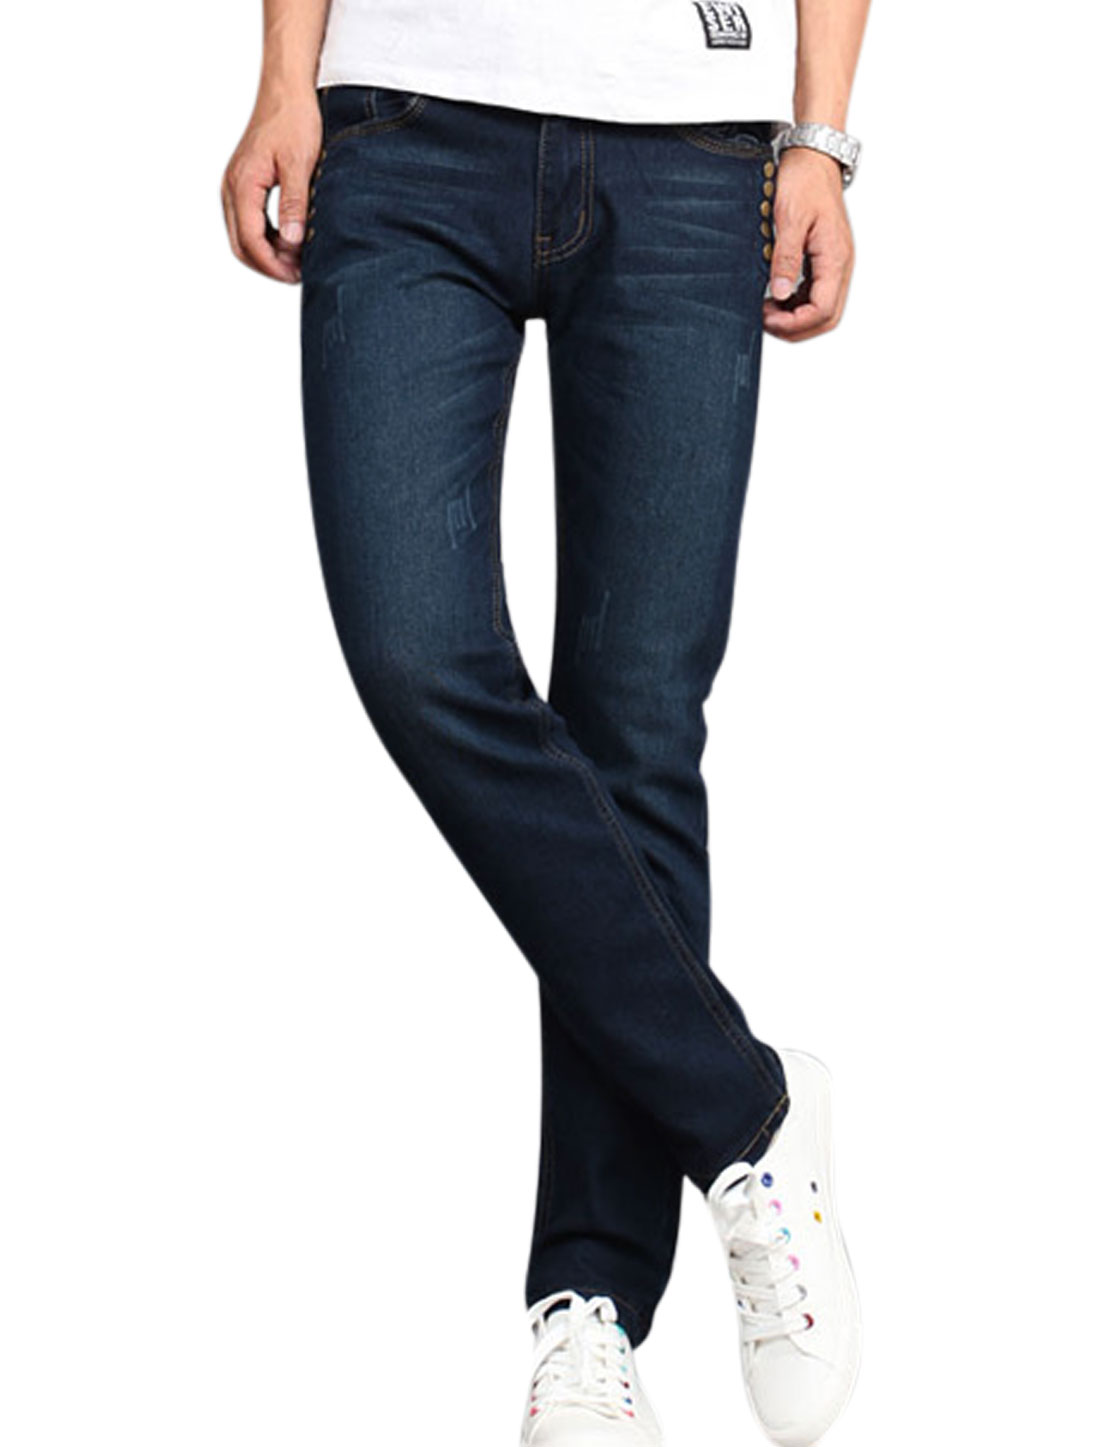 Man Studs Decor Mid Rise Five Pockets Zip Fly Casual Jeans Dark Blue W30